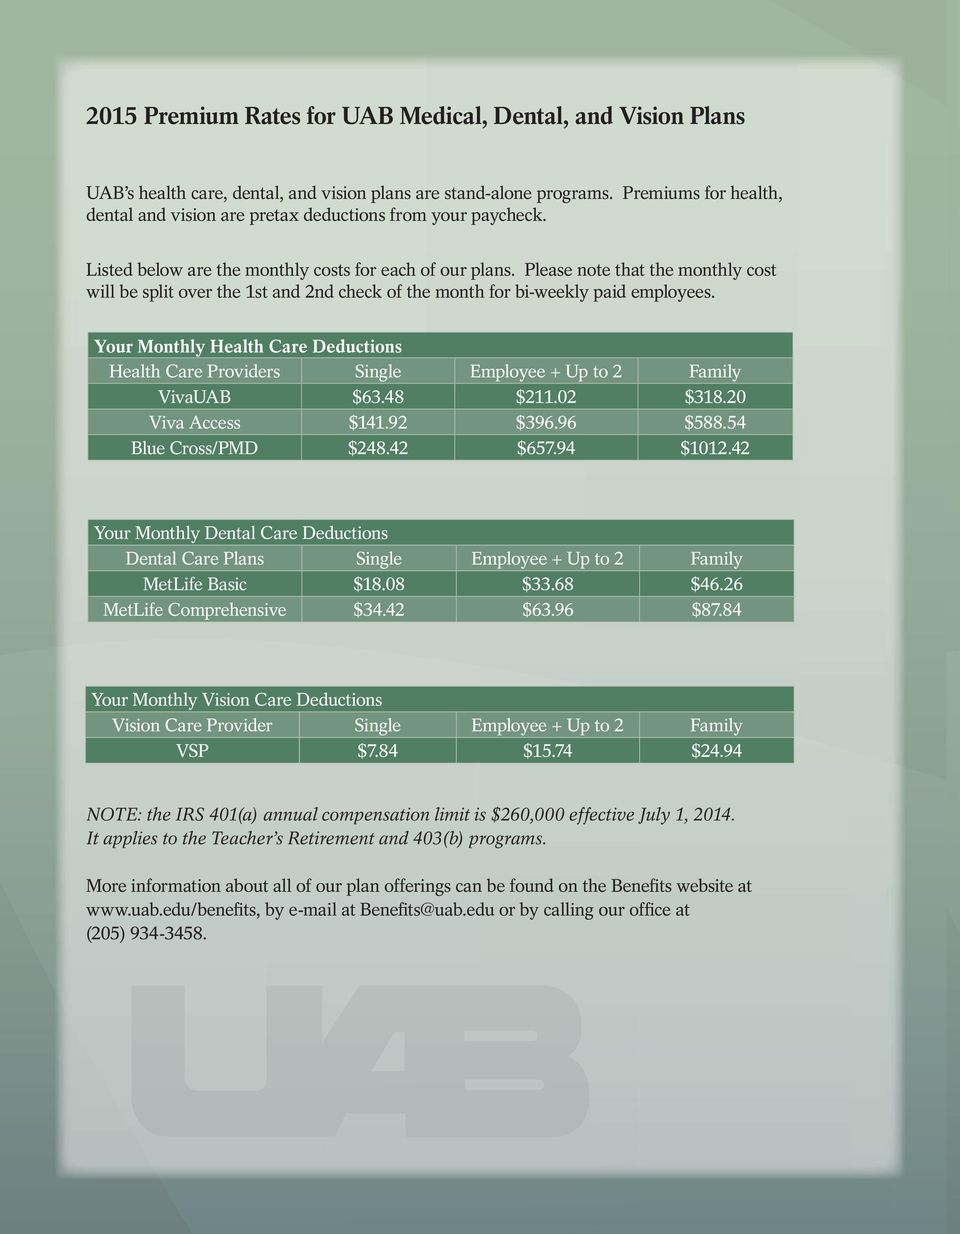 Please note that the monthly cost will be split over the 1st and 2nd check of the month for bi-weekly paid employees.